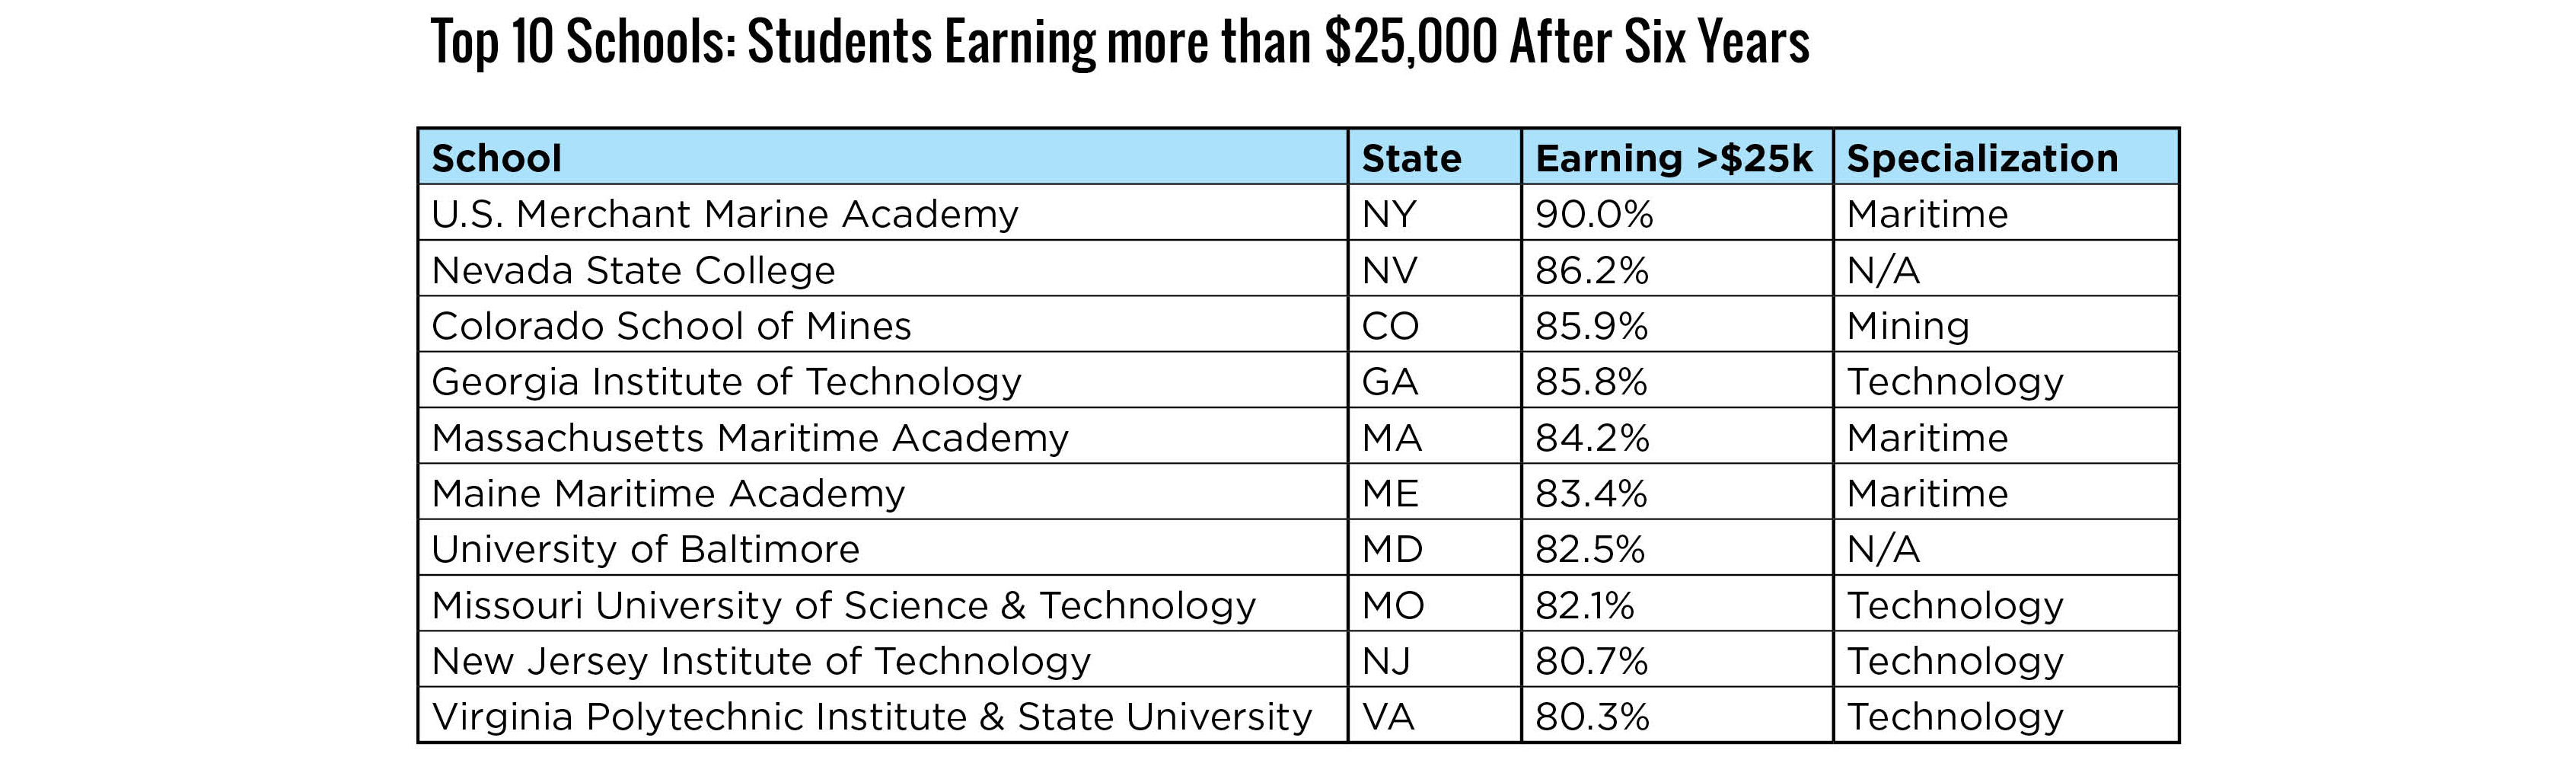 Top 10 Schools for Earnings